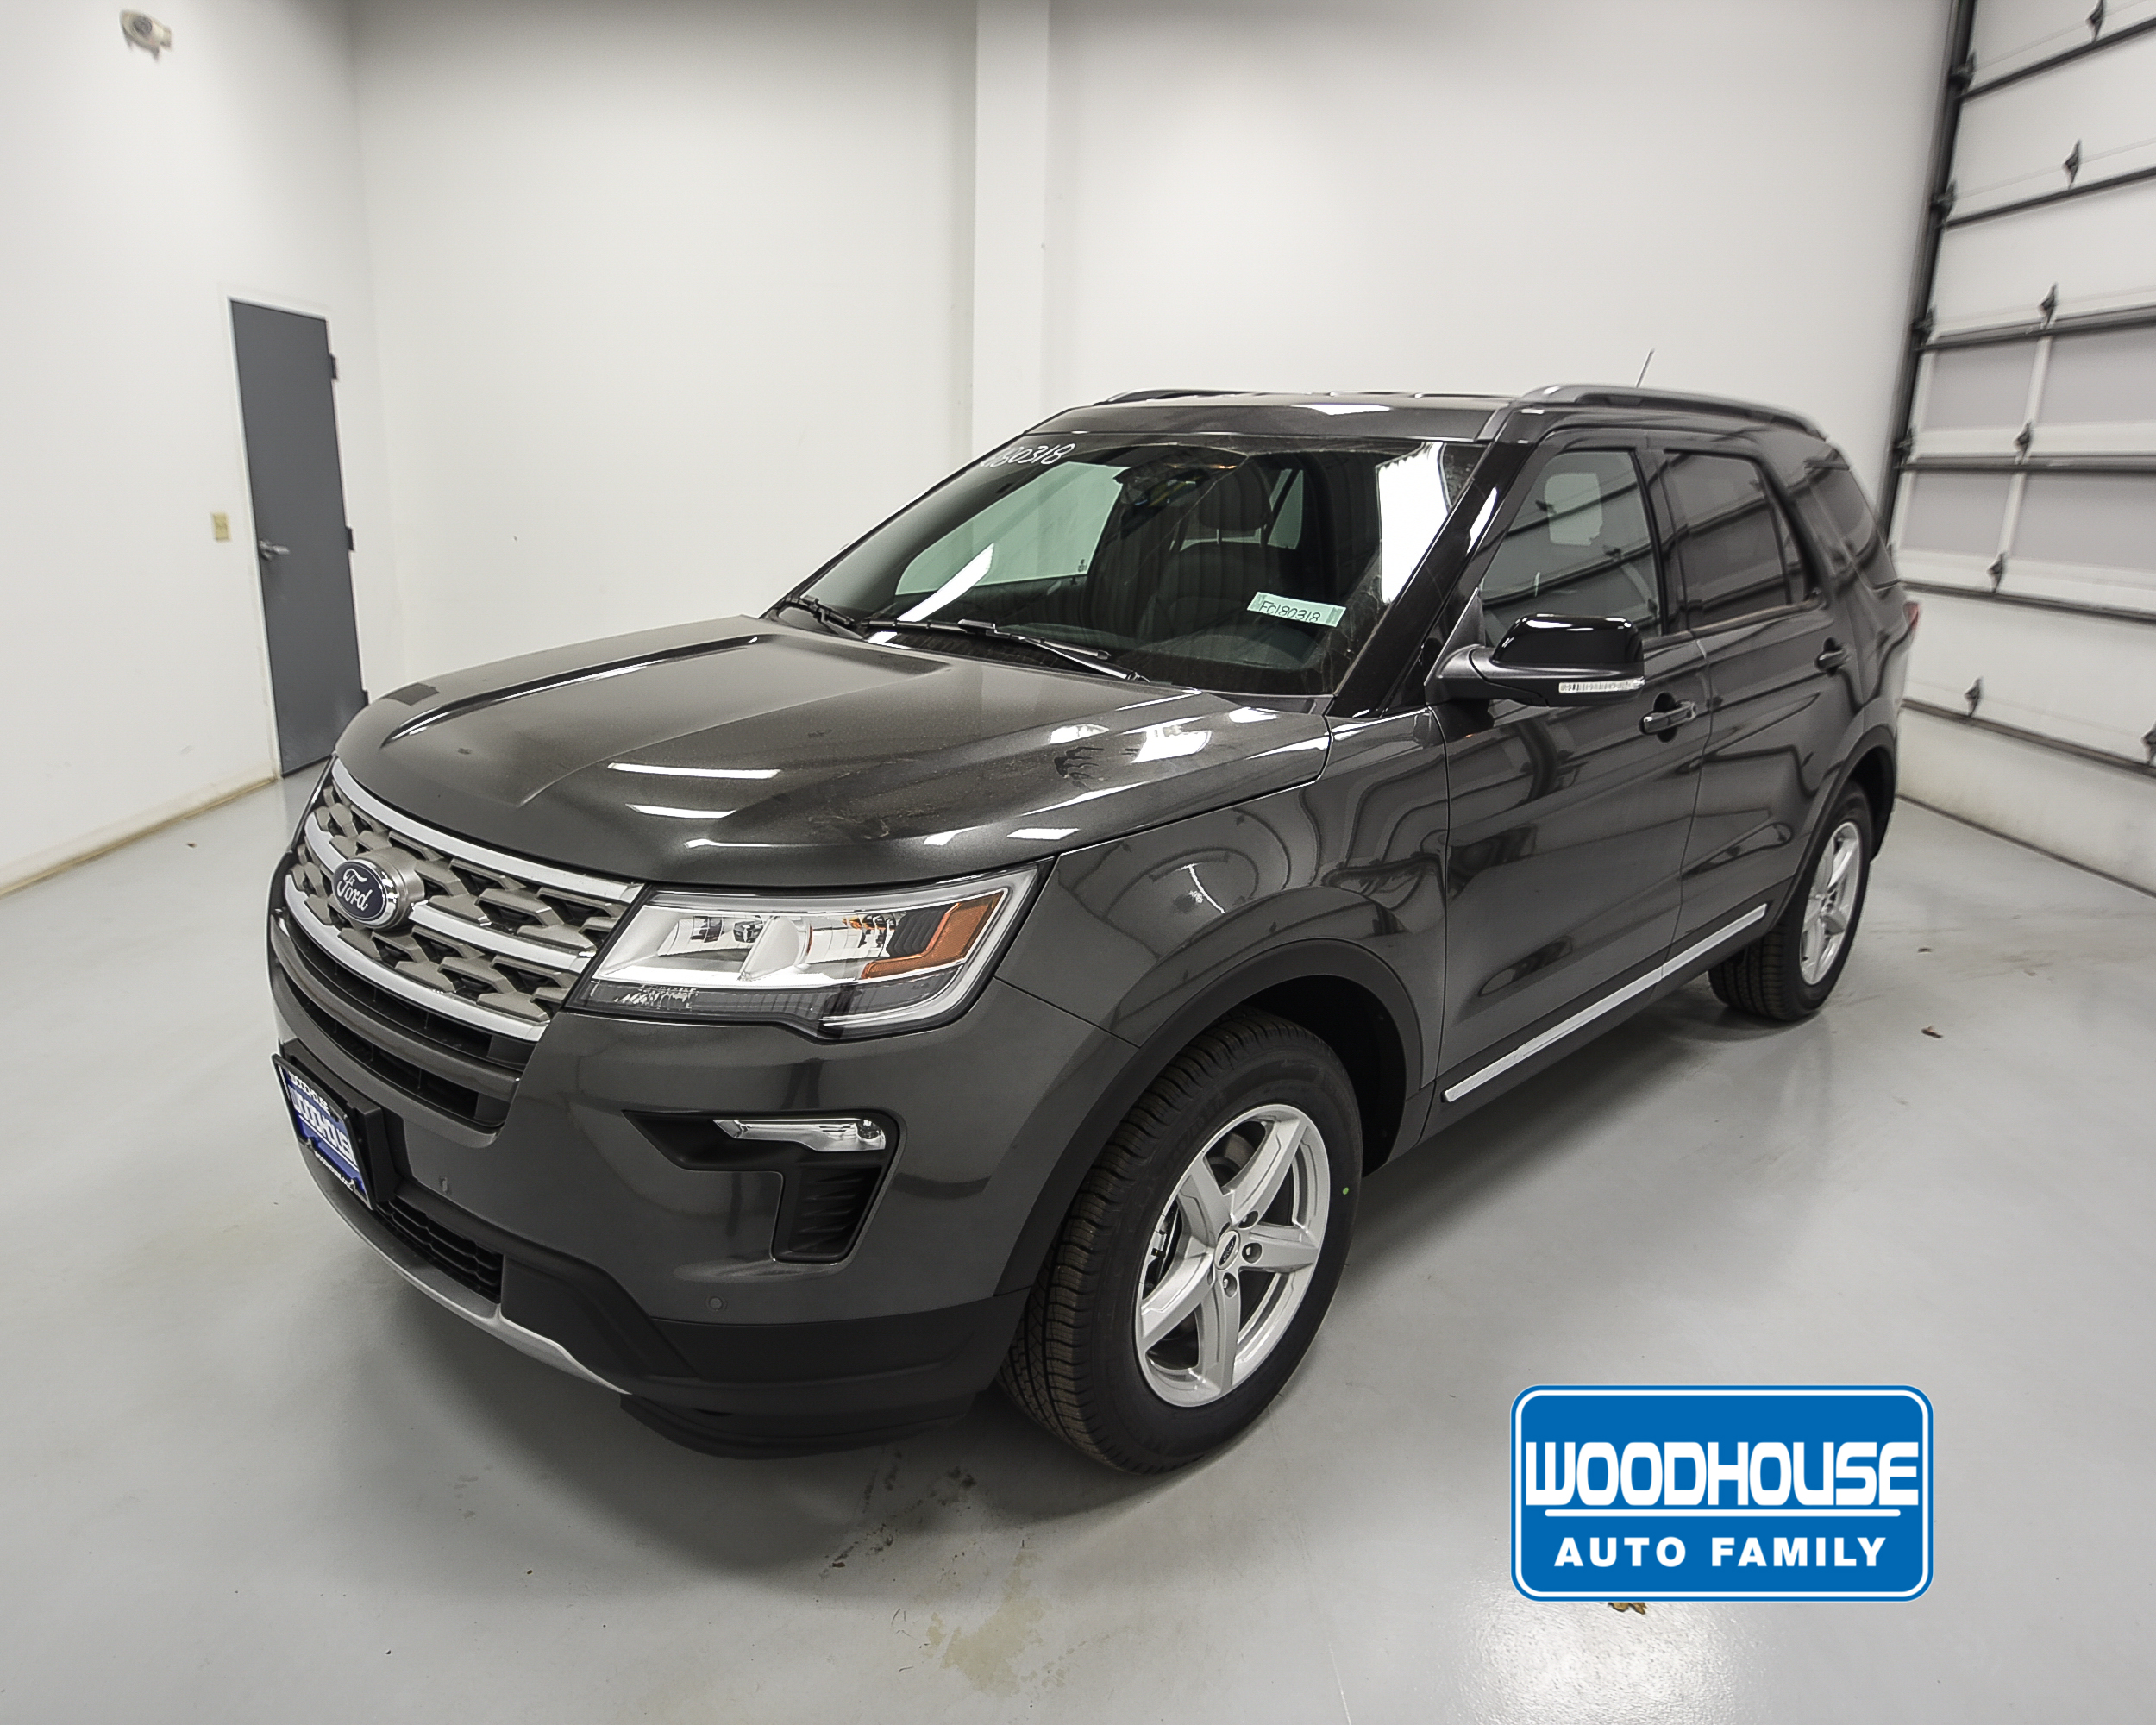 Ford Explorer For Sale Woodhouse Auto